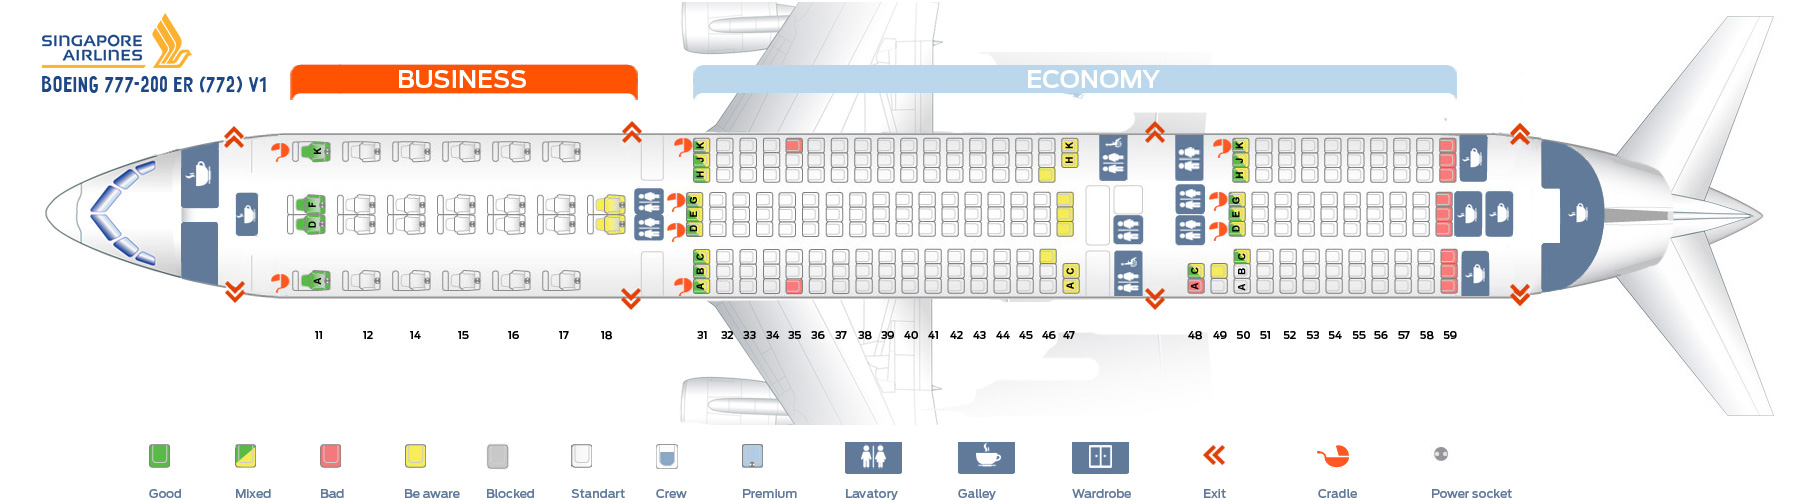 Seat Map Boeing 777-200ER V1 Singapore Airlines